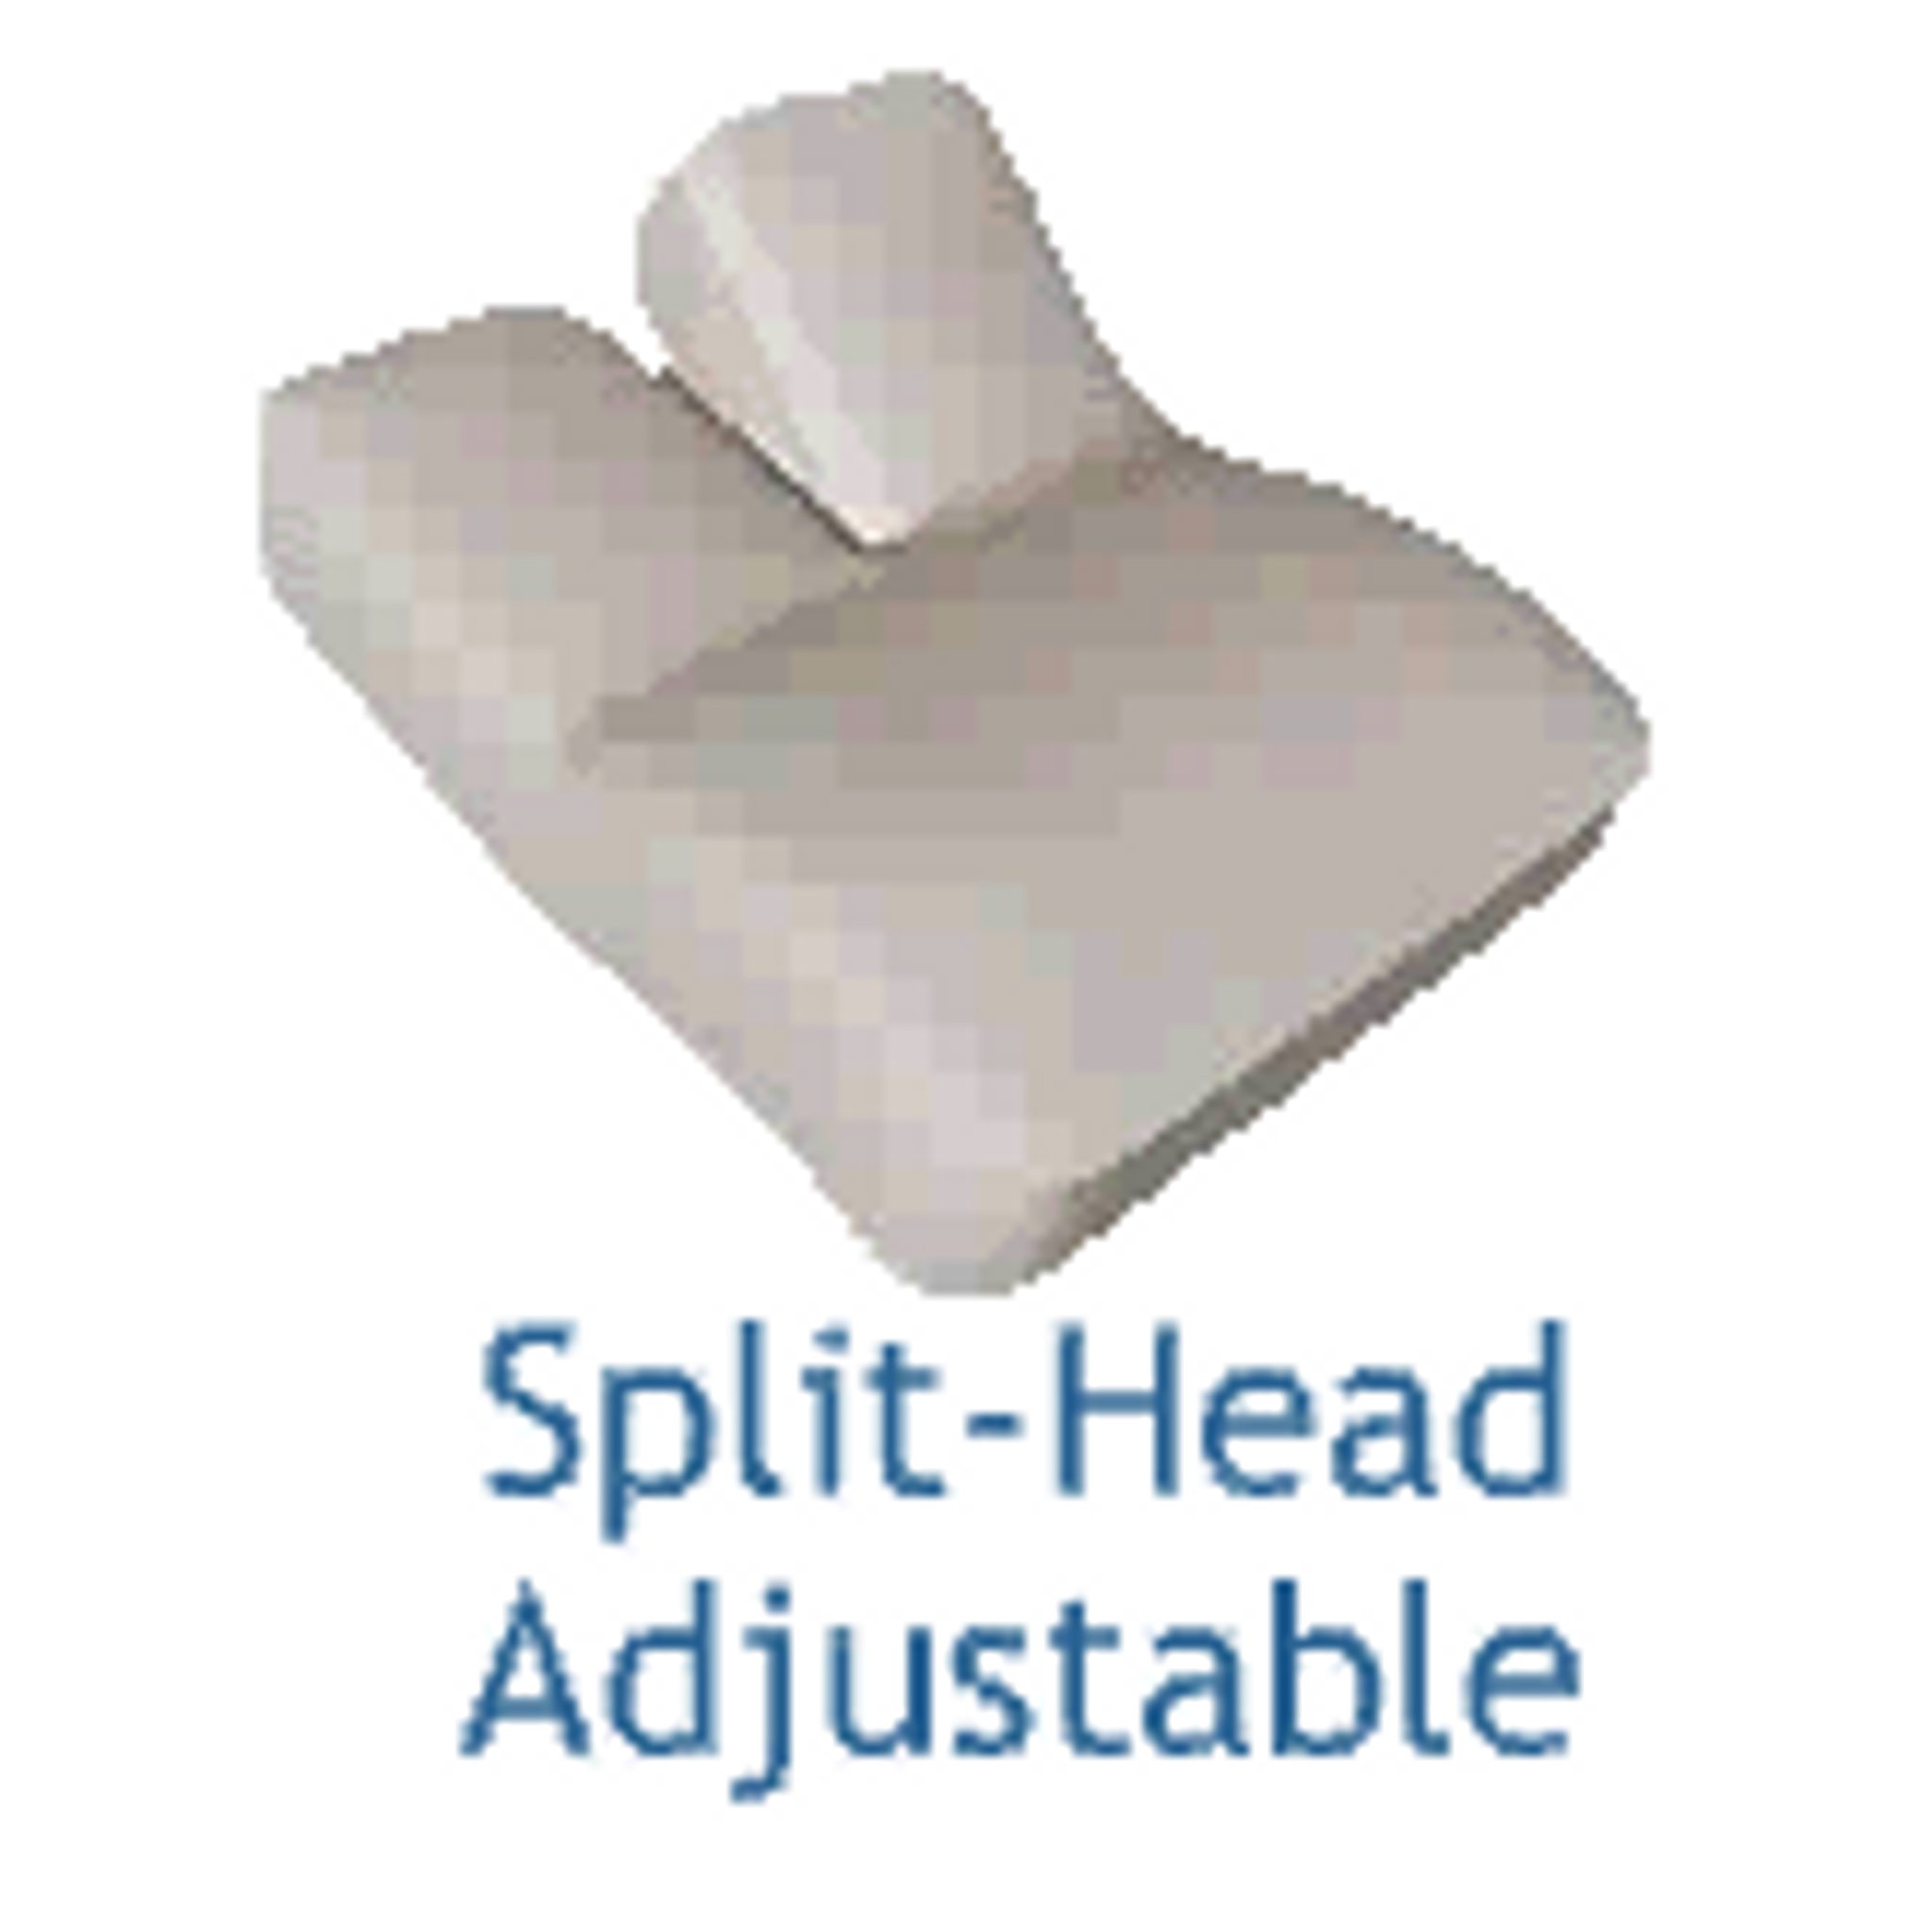 Adjustable Bed - Split-Head Design